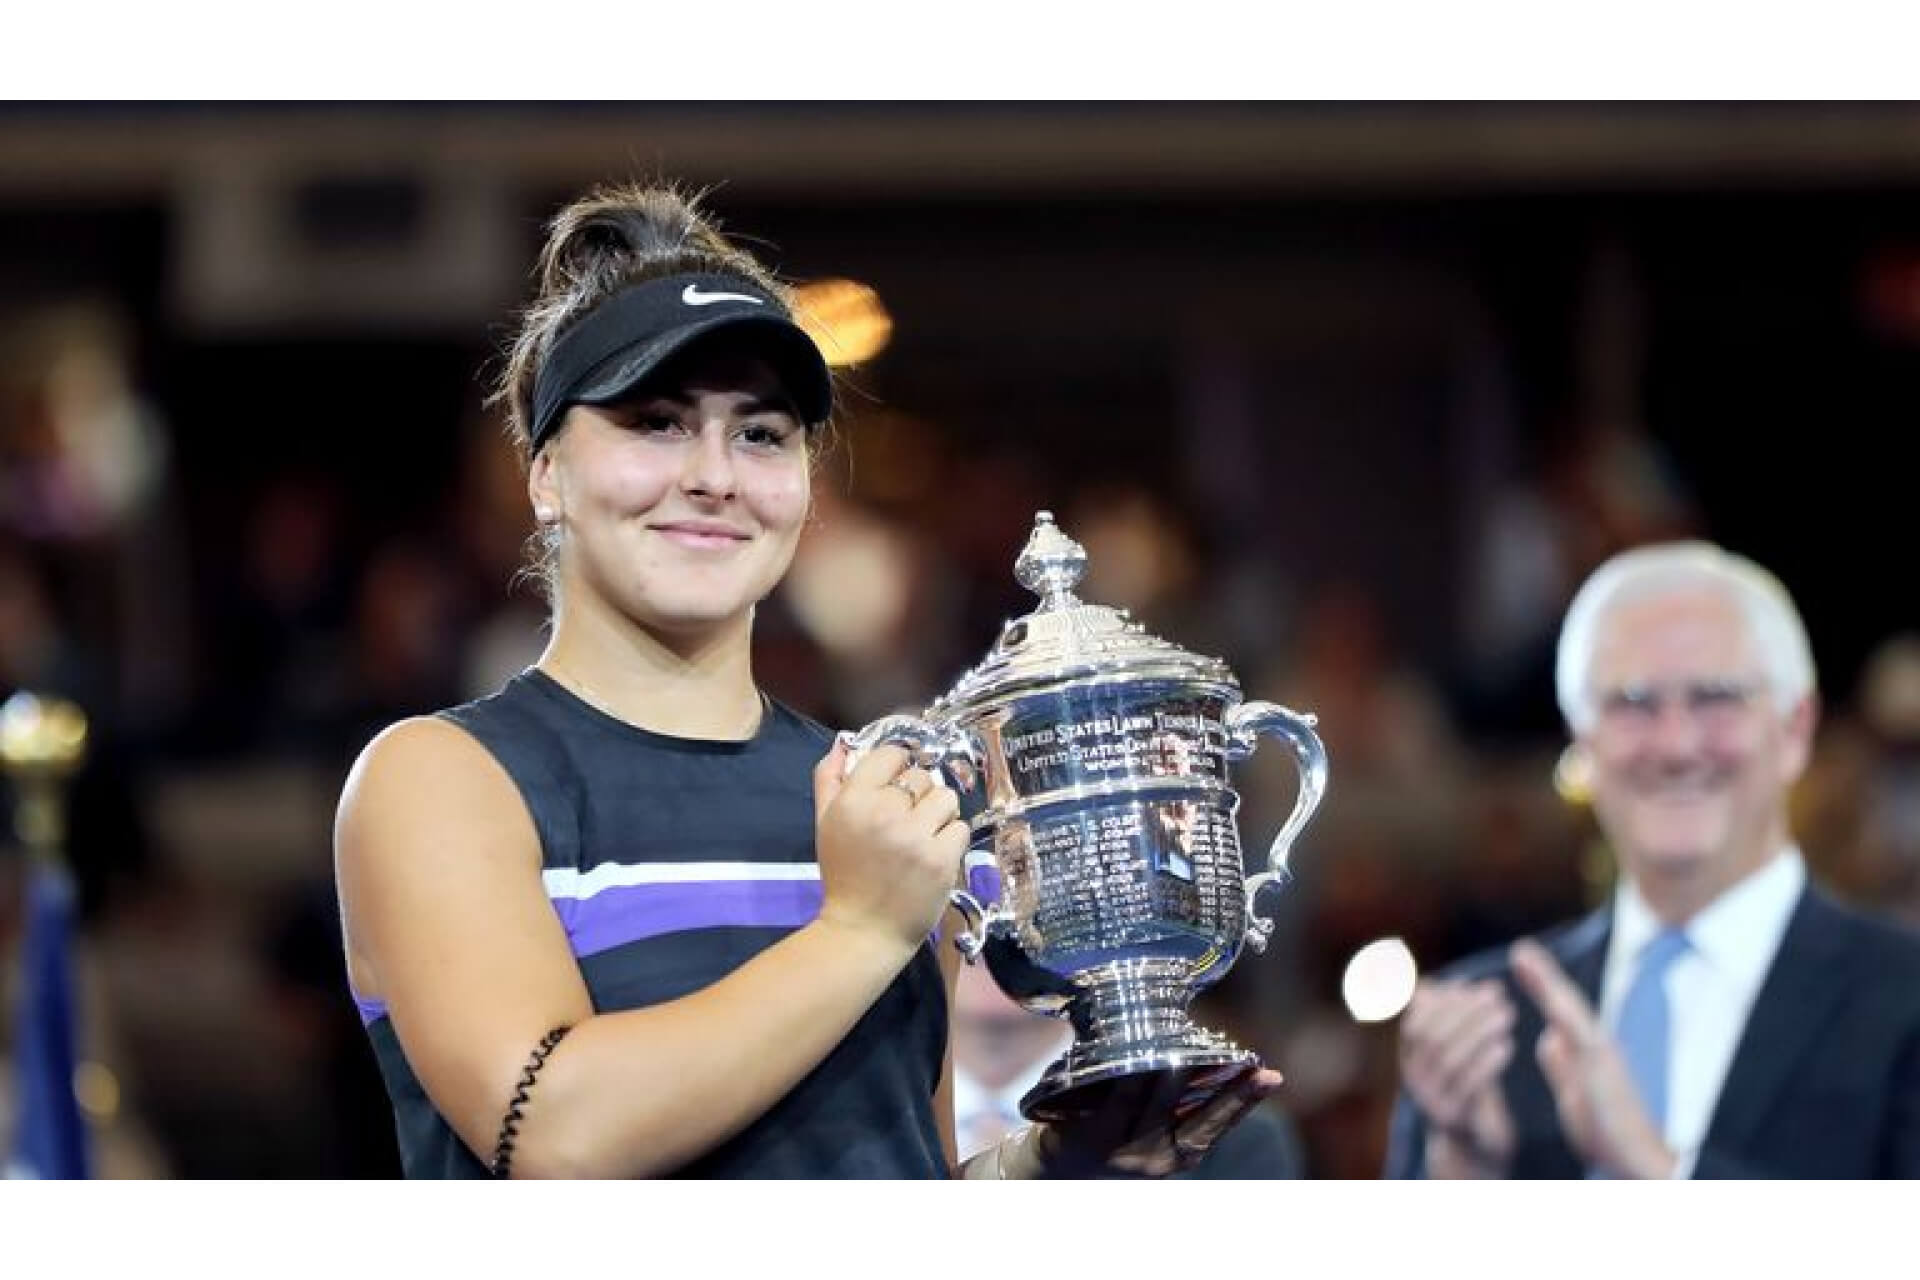 Bianca Andreescu will not defend her US Open title